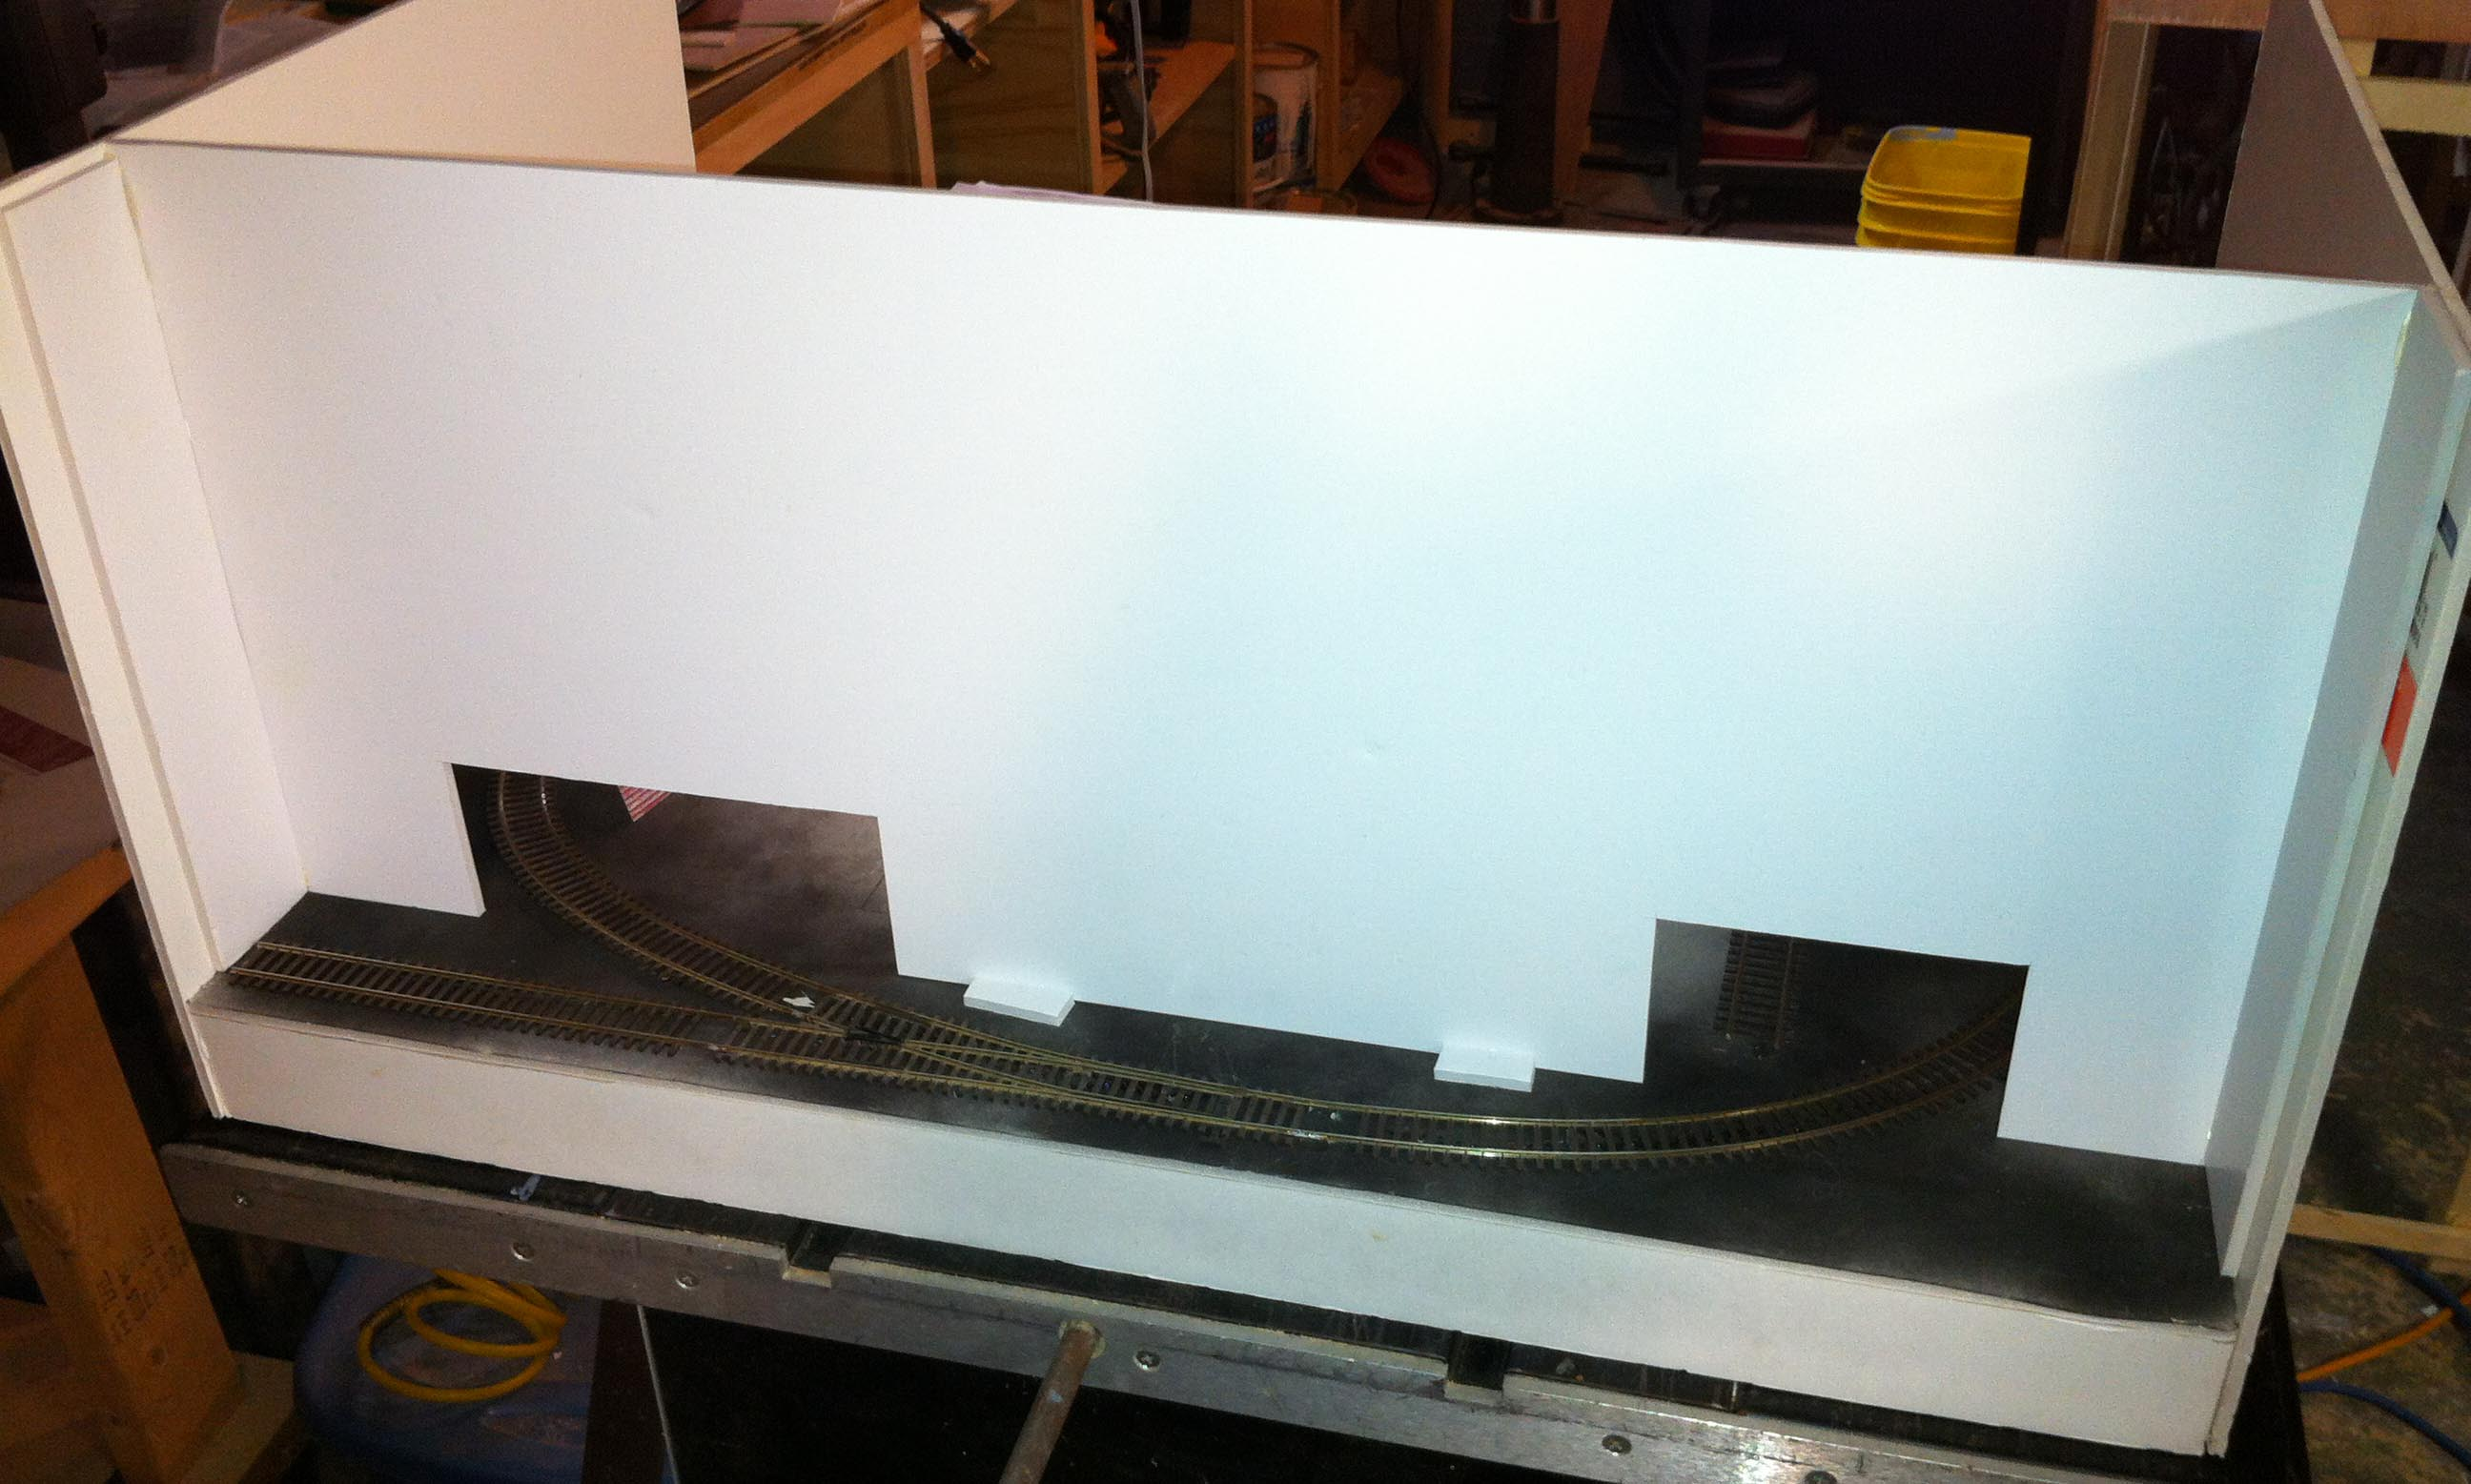 Back board as seen from the rear of the layout